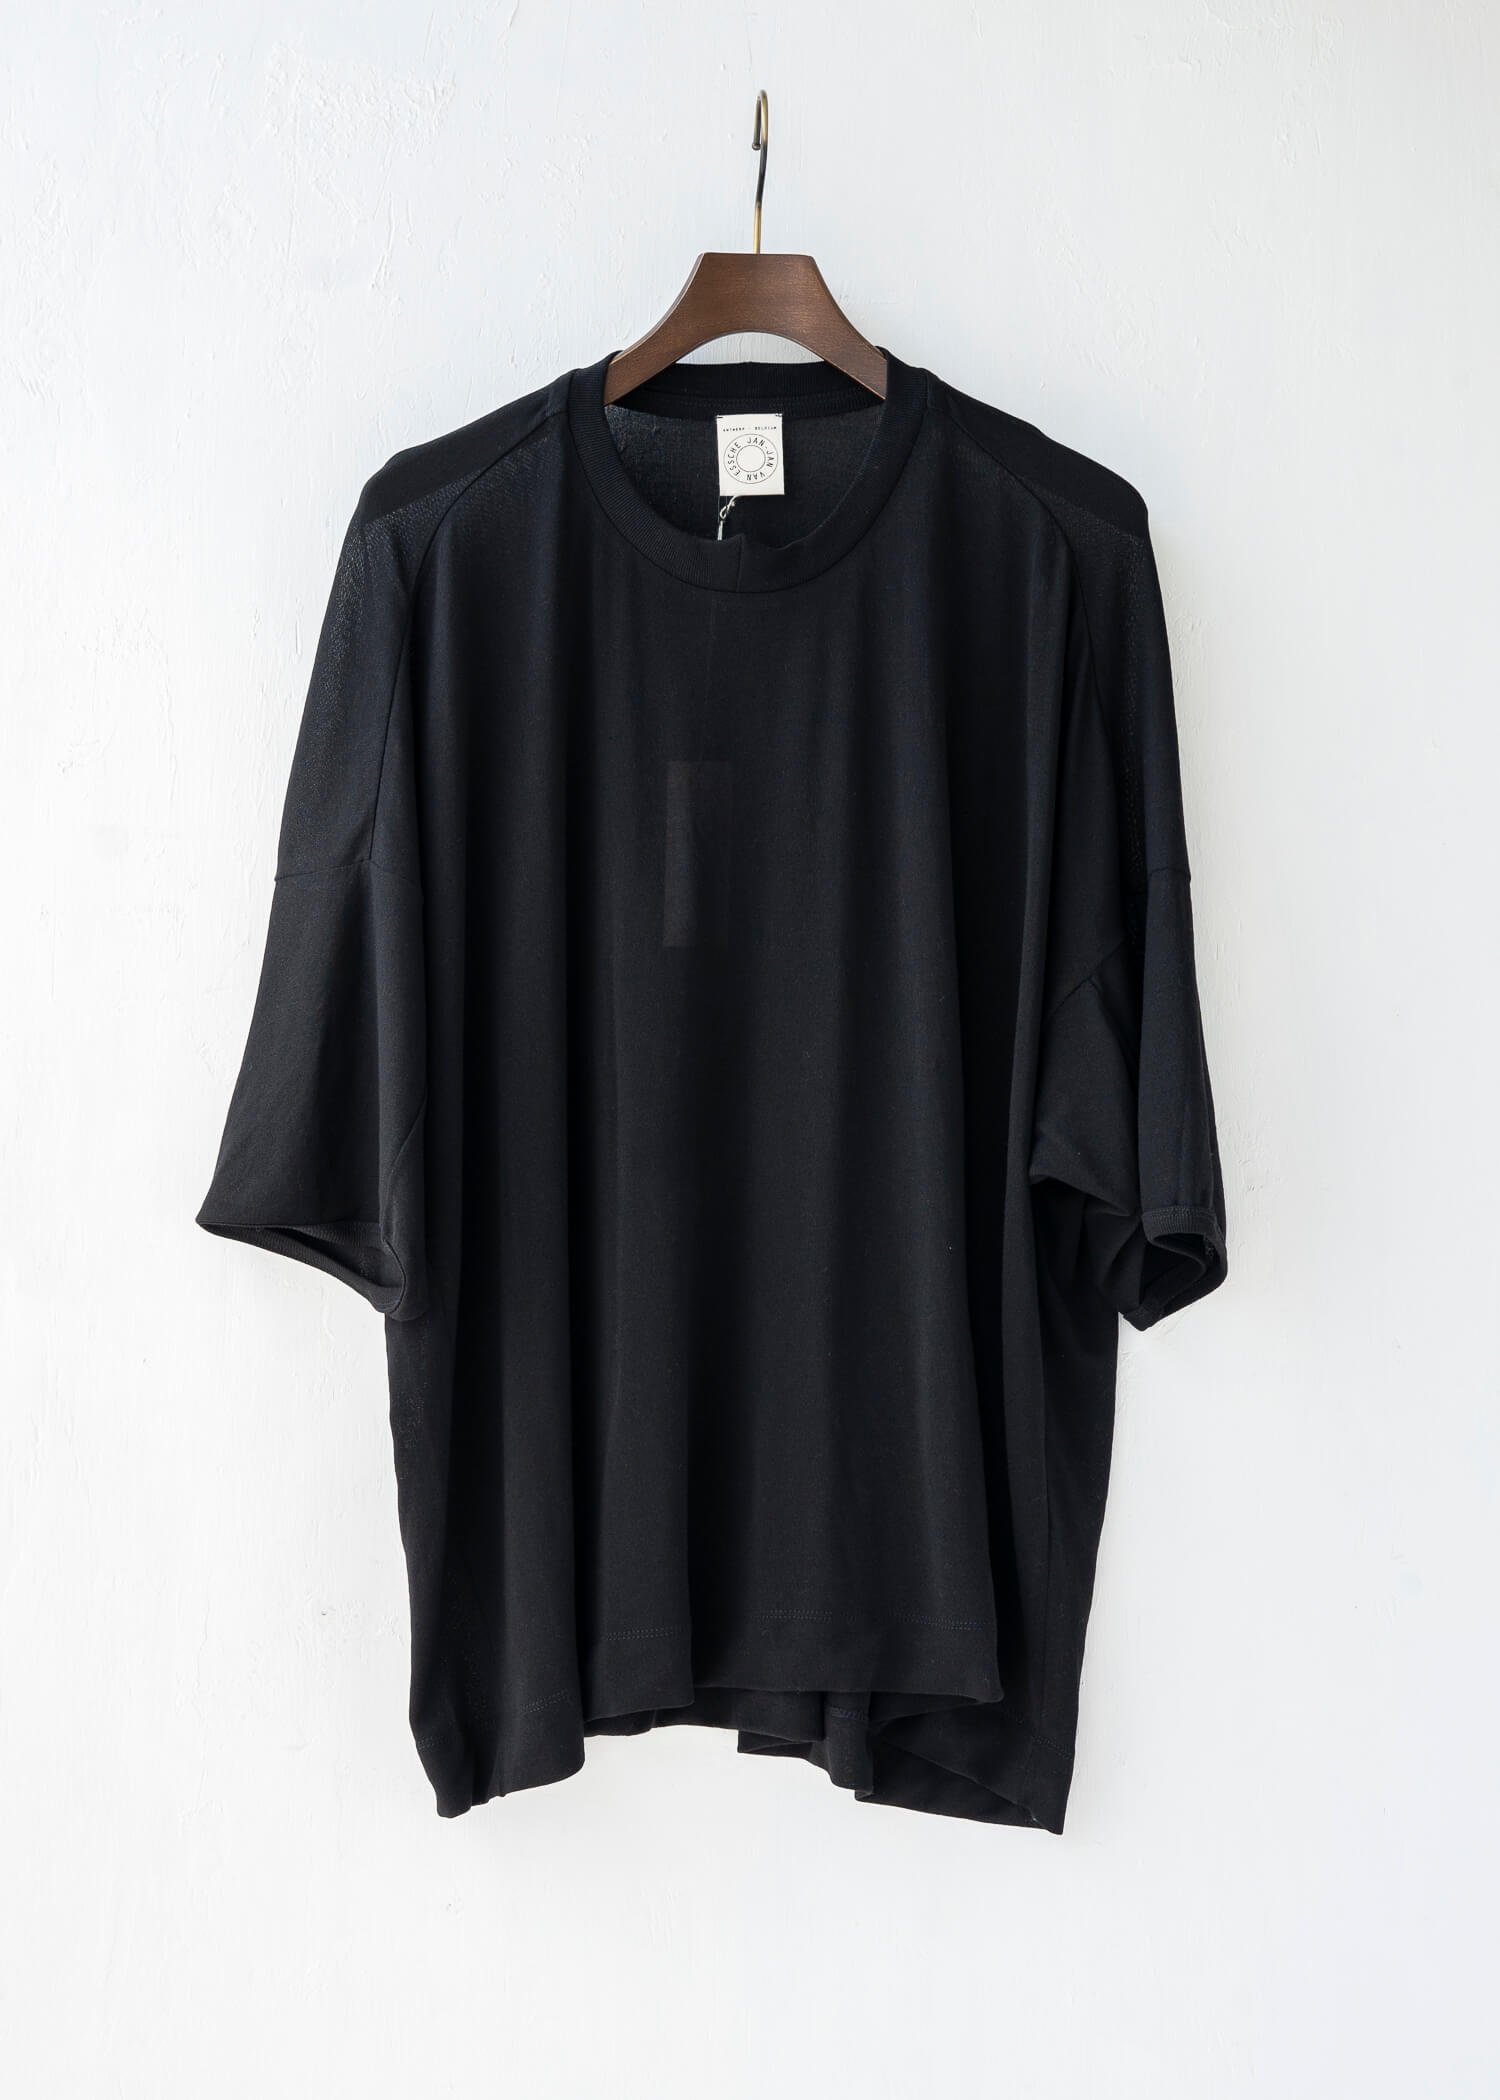 JAN-JAN VAN ESSCHE / TEE#60 WIDE FIT T-SHIRT BLACK WA/CO JERSEY